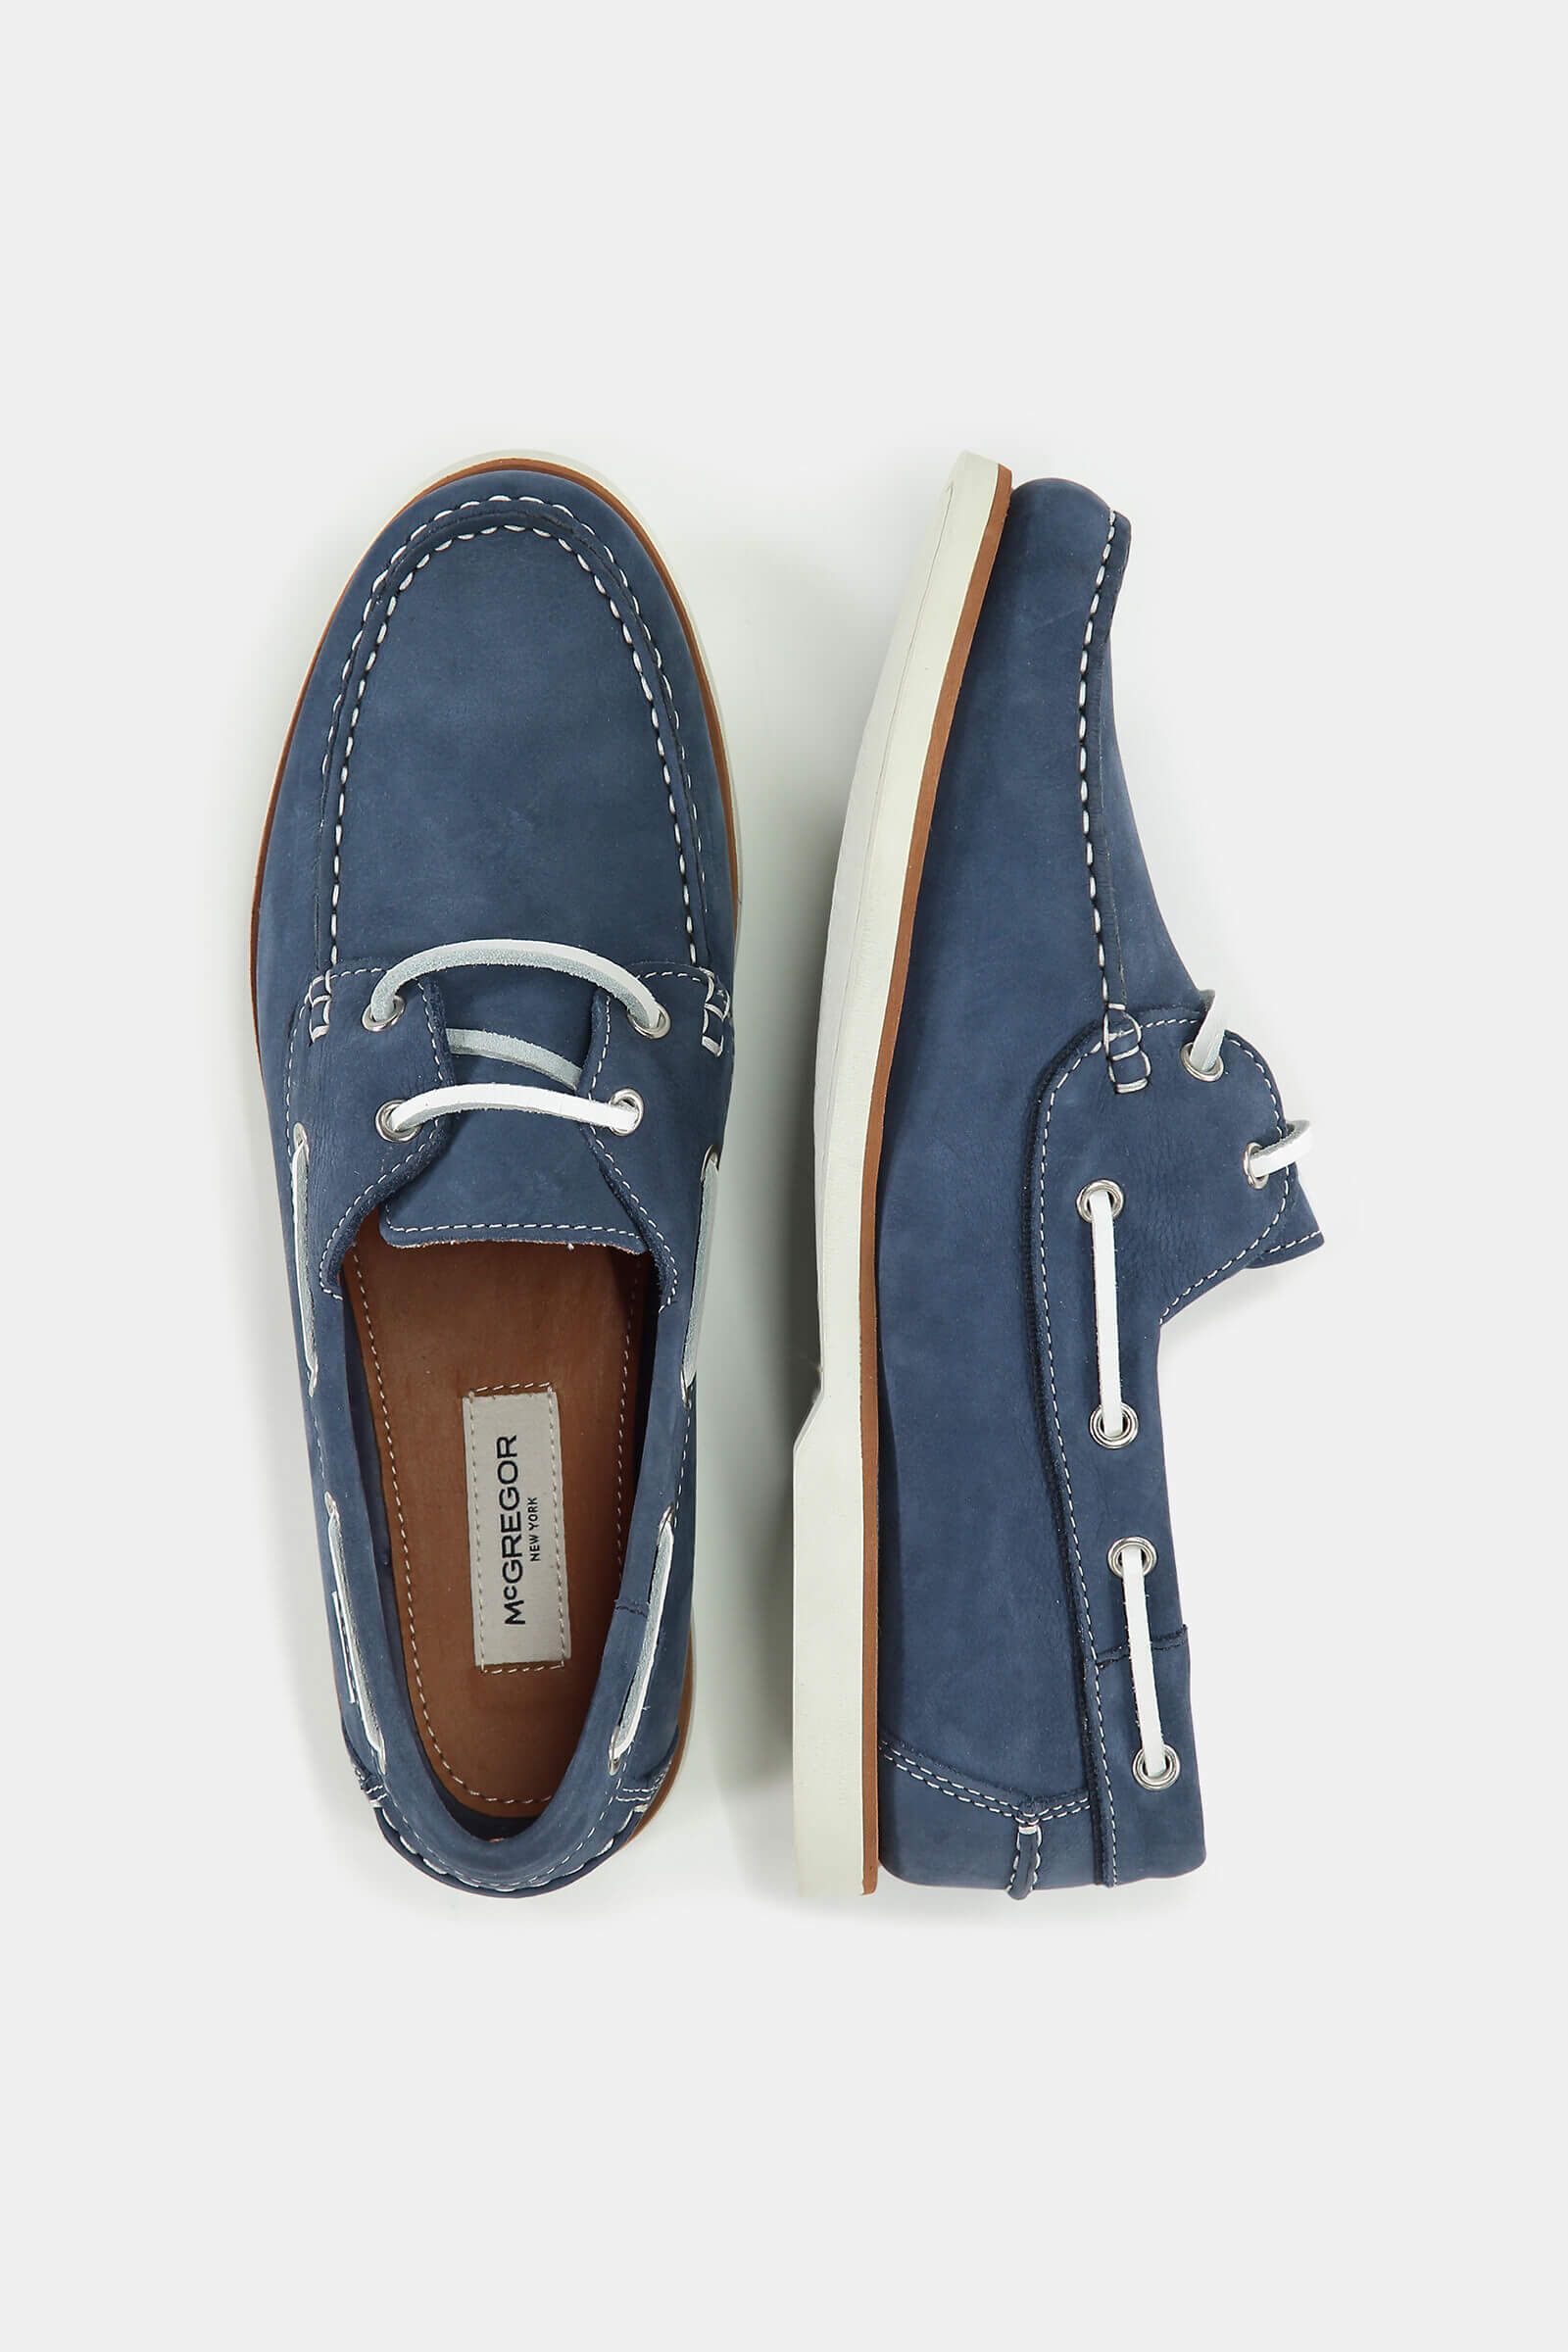 Blue Nubuck leather boat shoes